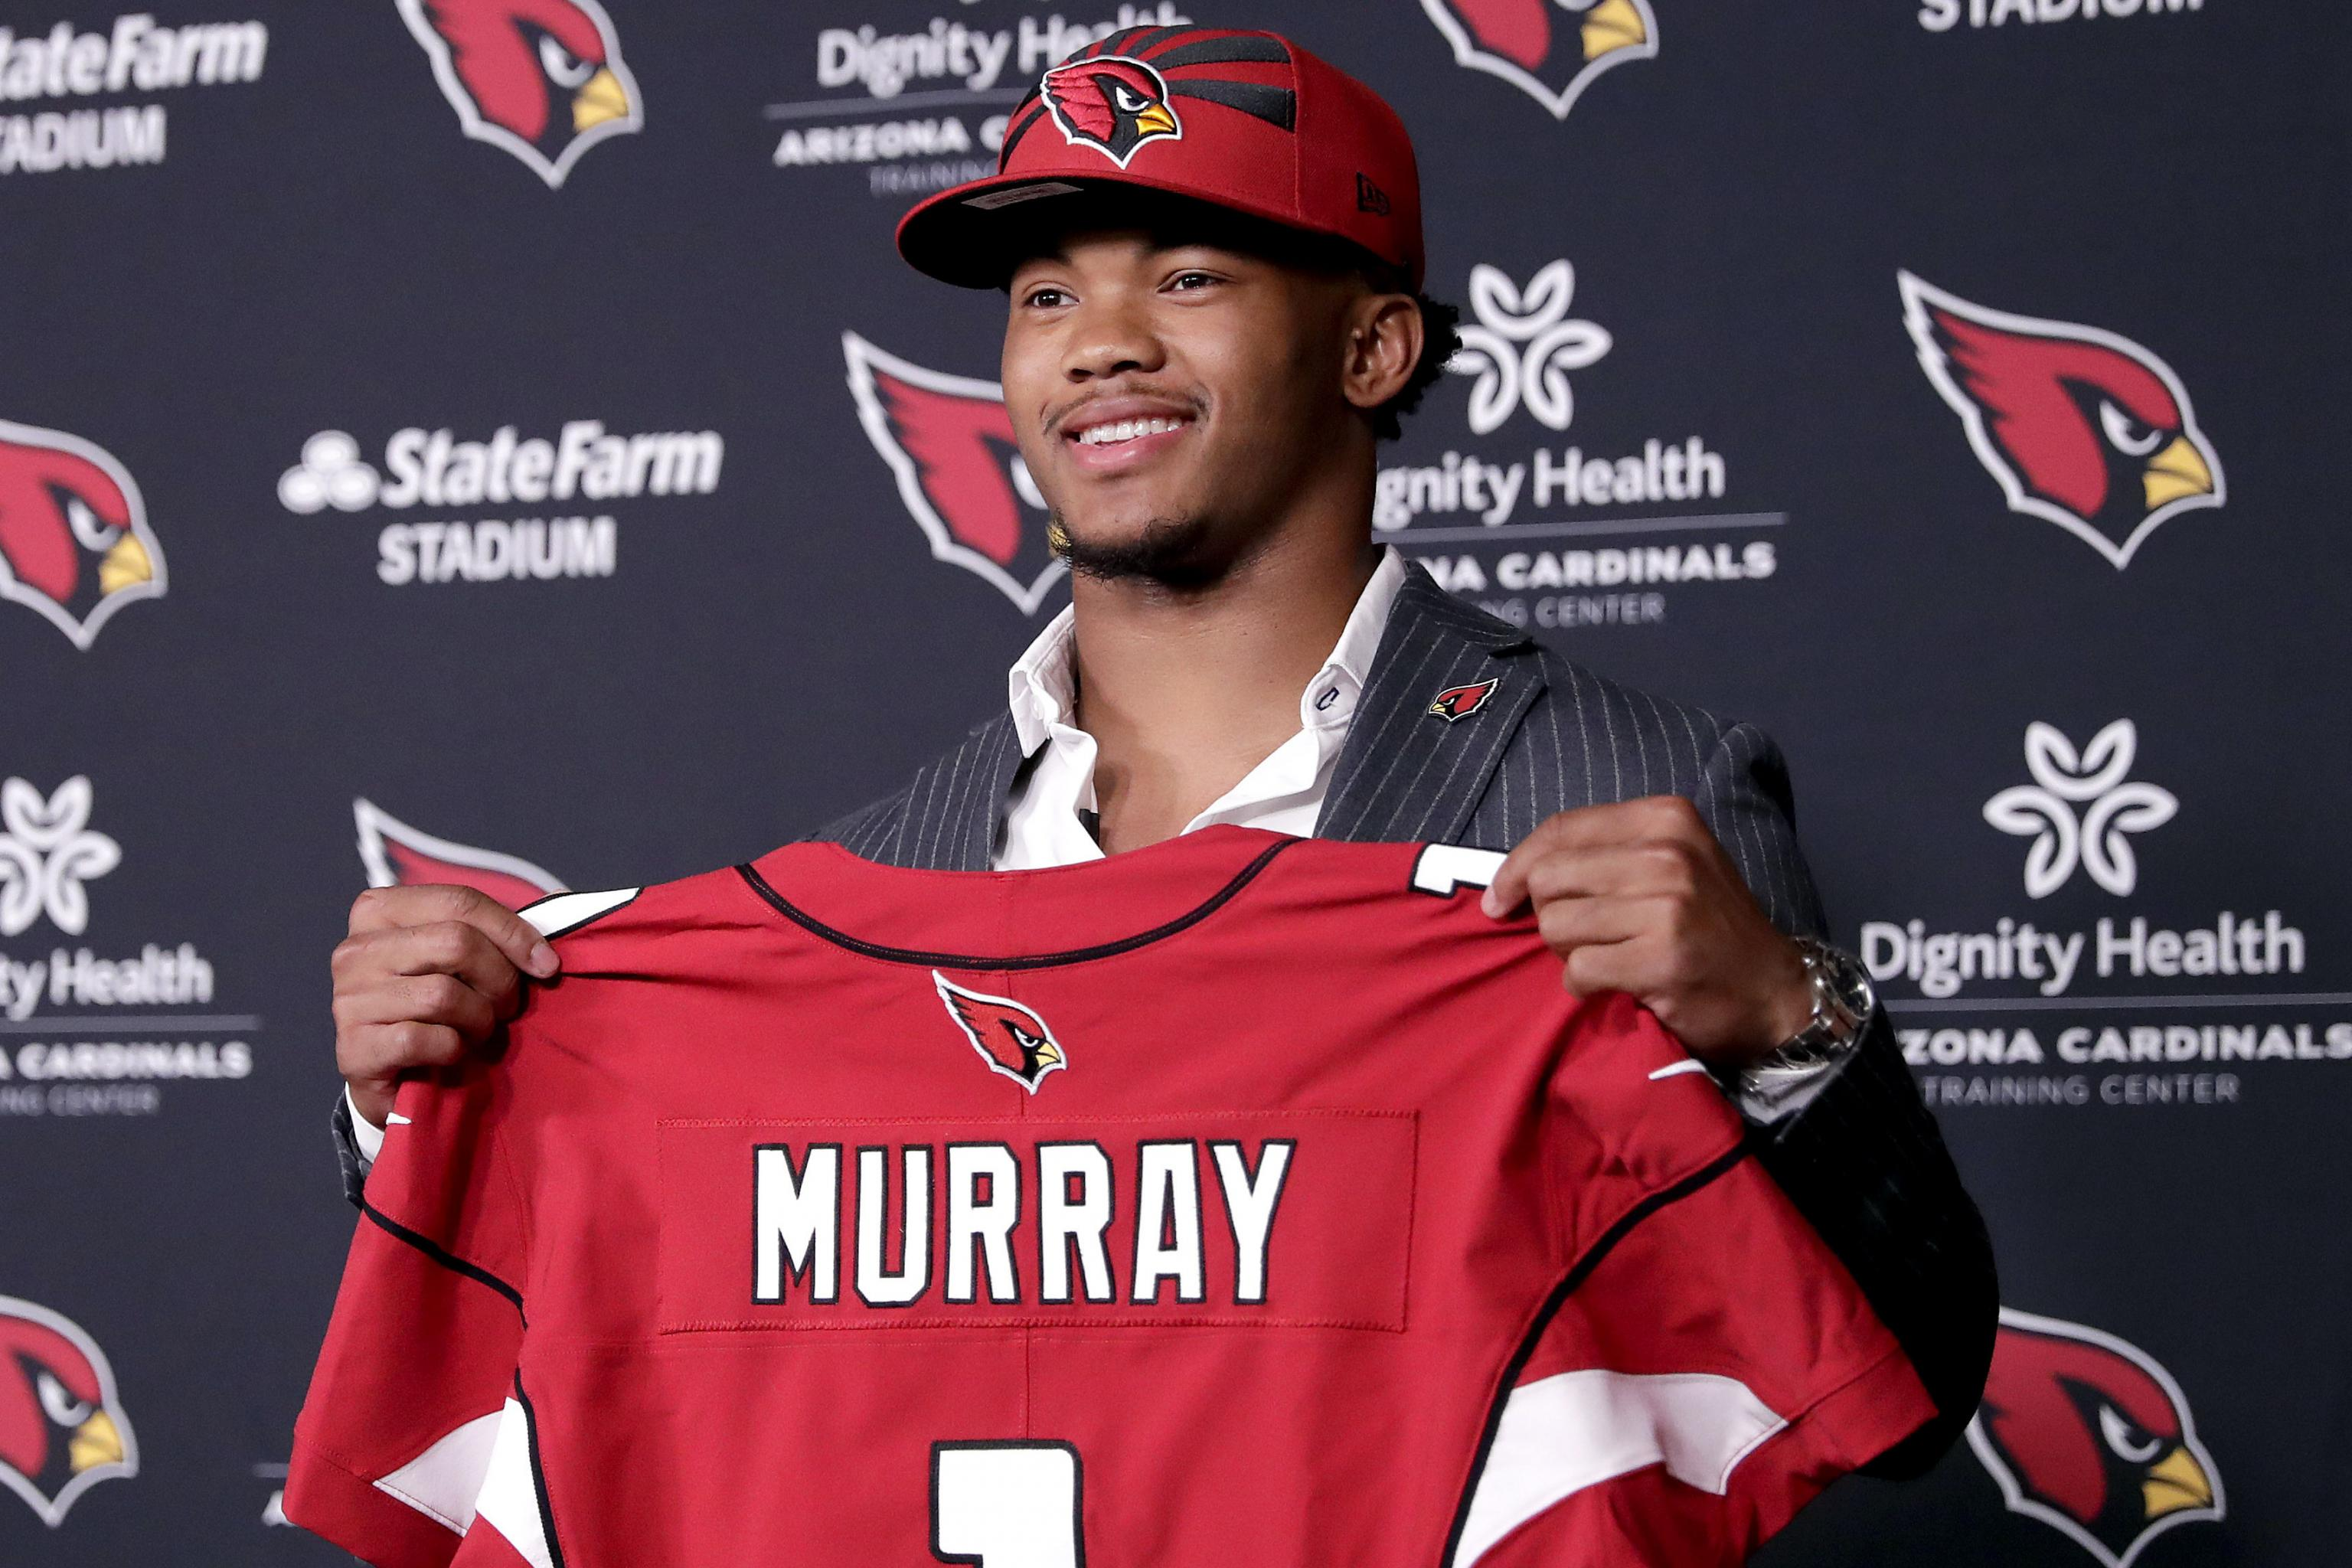 Kyler Murray signs $36 million rookie contract with the Arizona Cardinals